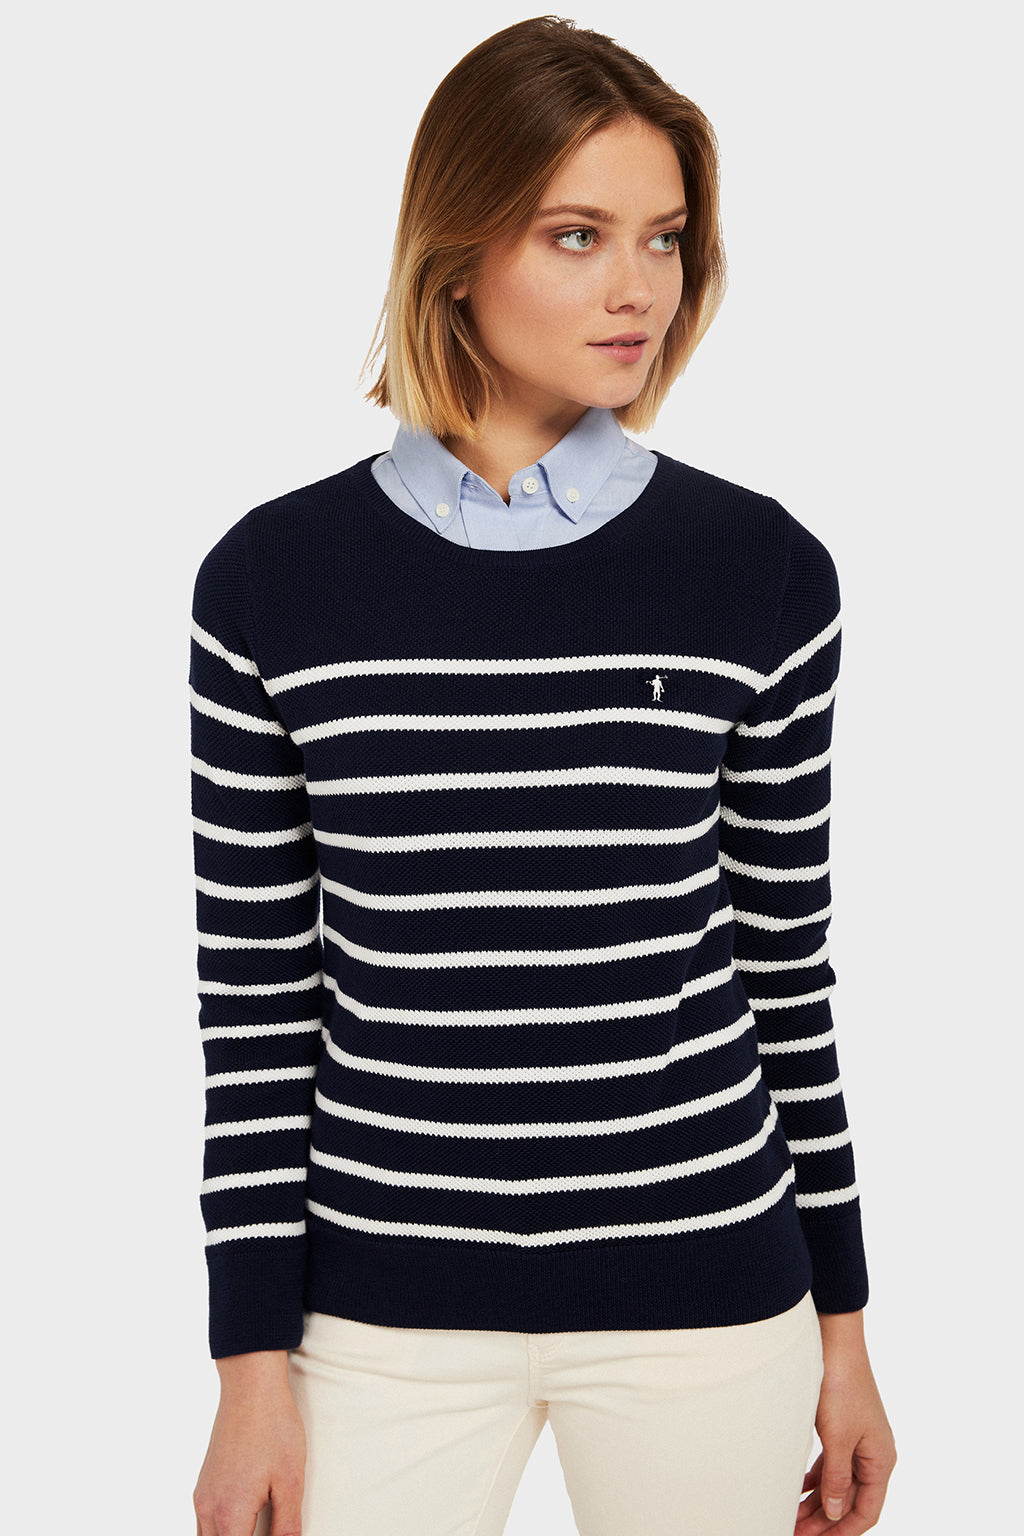 Jersey Navy Stripes Marino-Crudo